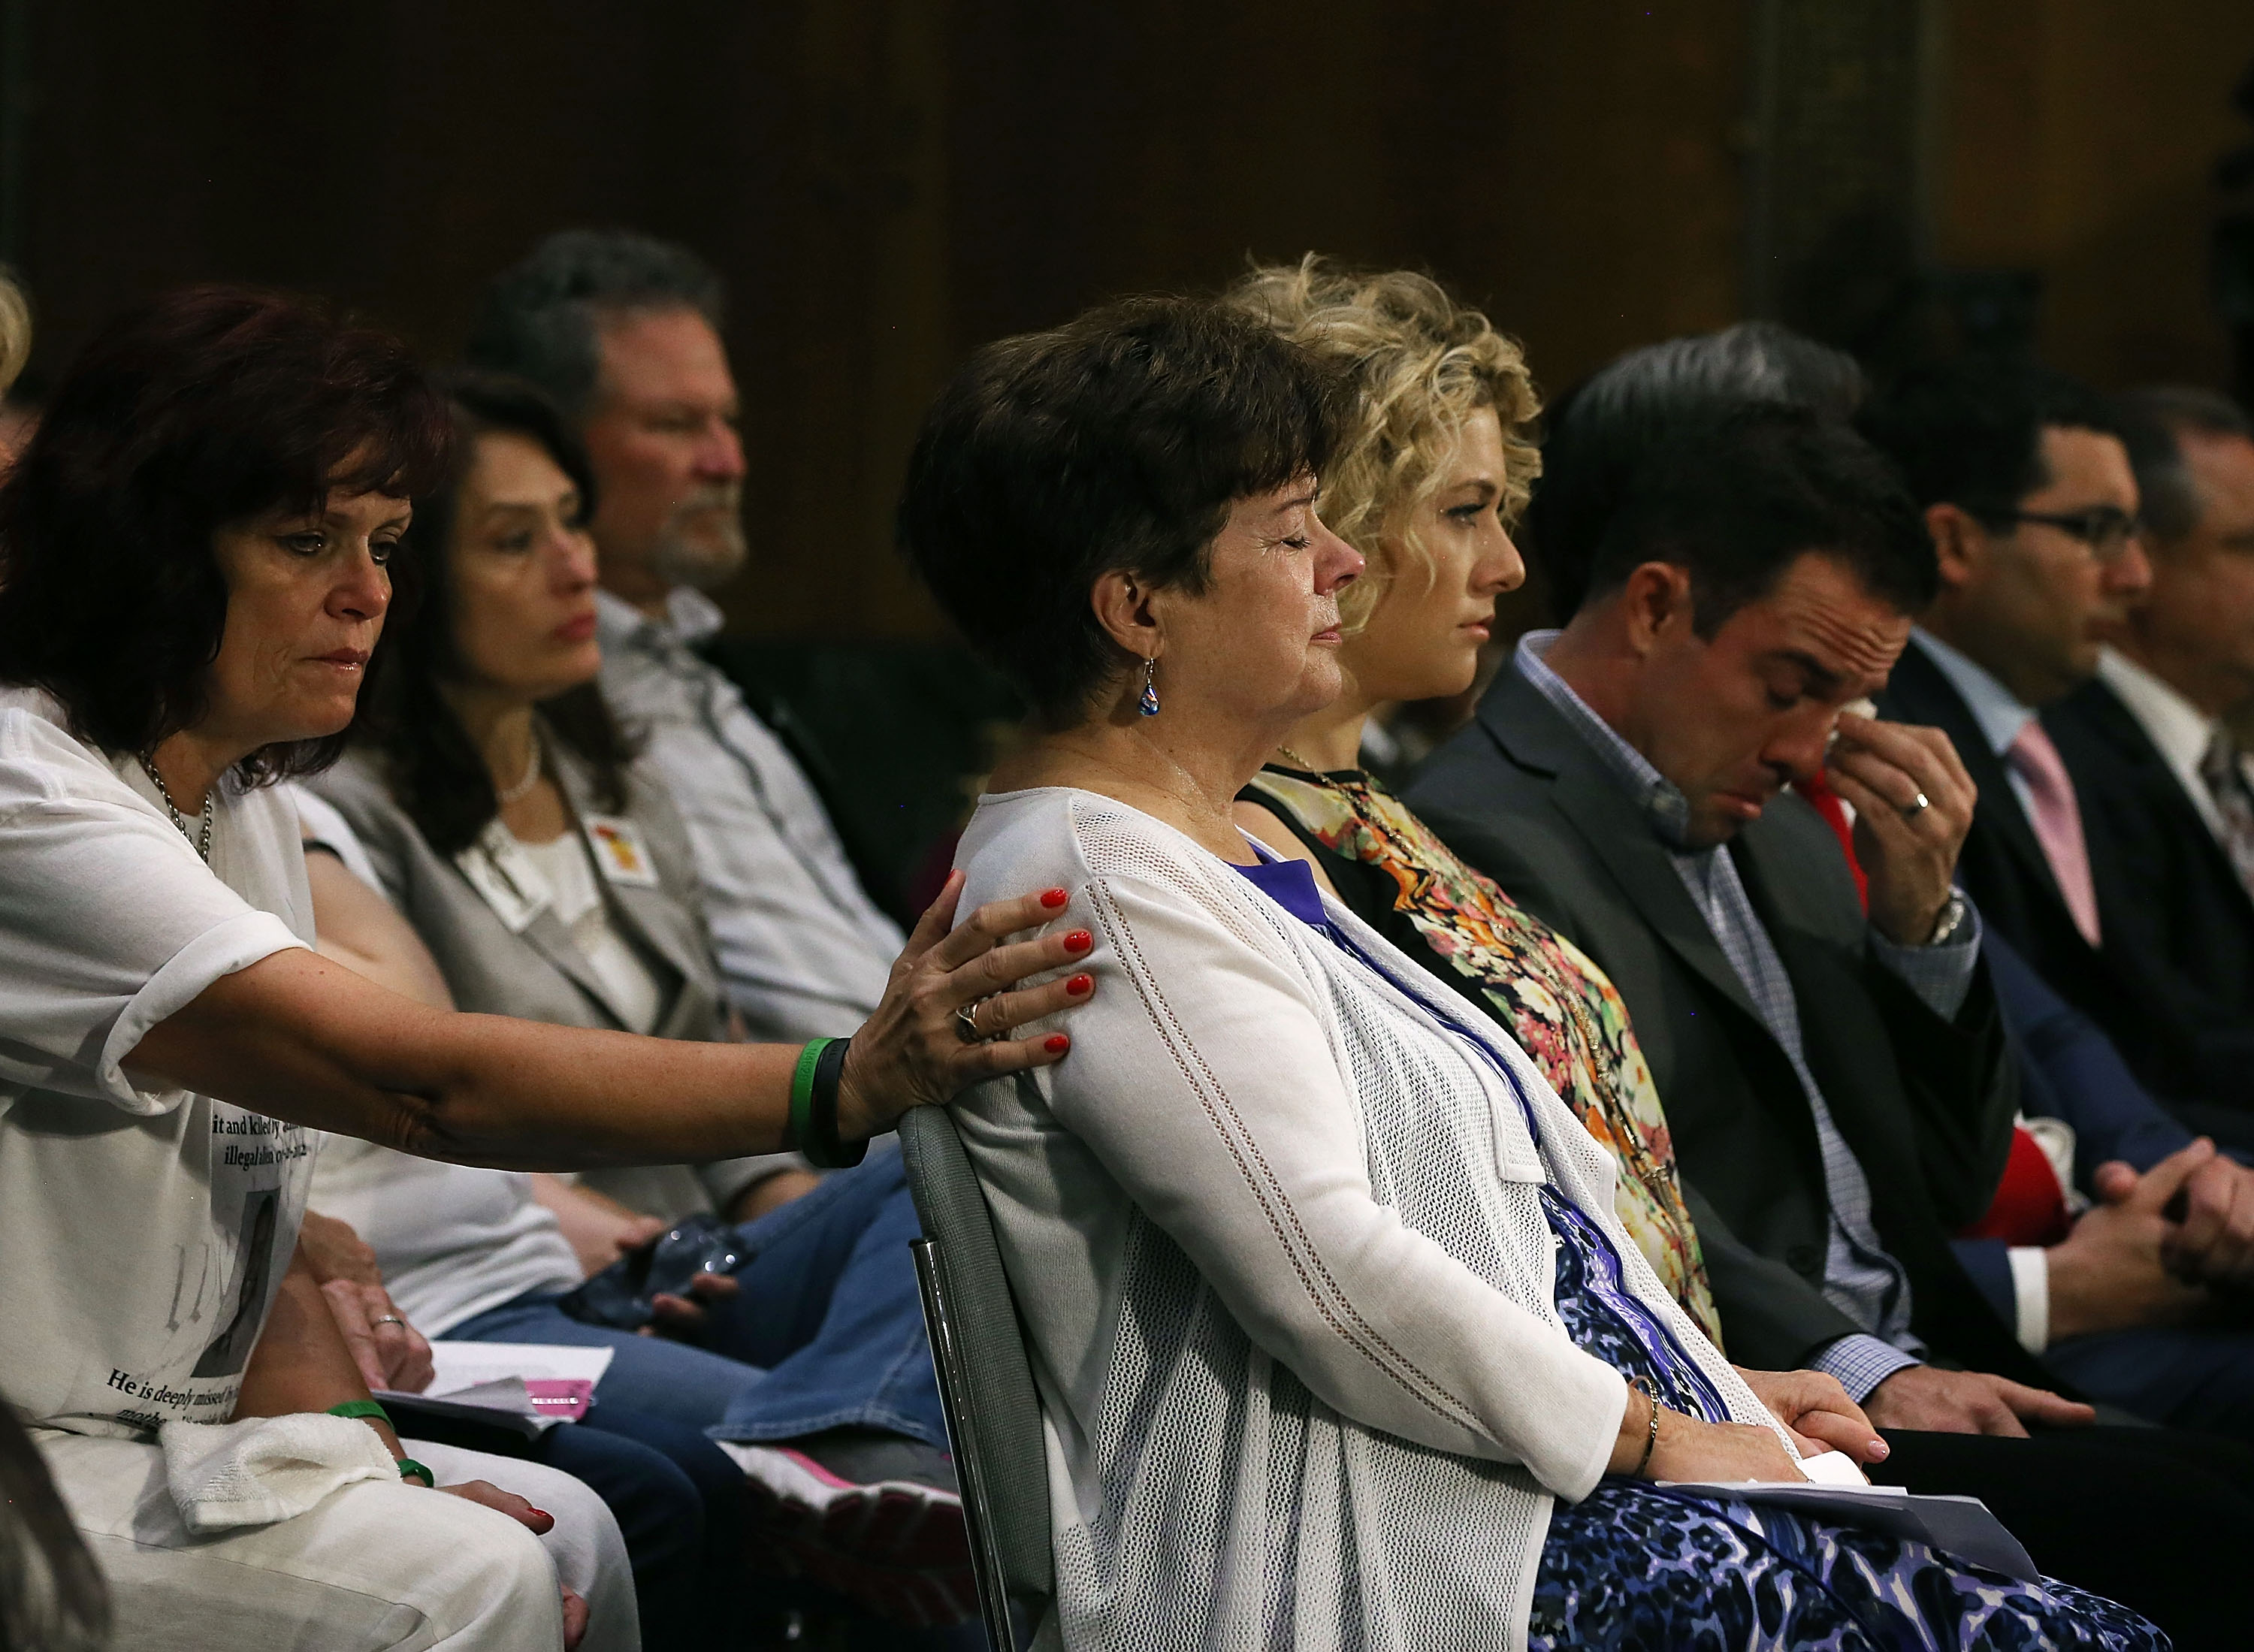 Liz Sullivan (C) mother of Kathryn  Kate  Steinle who was killed by an illegal immigrant in San Francisco, is comforted while her son Brad Steinle (R) sits nearby during a Senate Judiciary Committee hearing on Capitol Hill, July 21, 2015 in Washington, DC. The committee heard testimony from family members who have had loved ones killed by illegal immigrants.